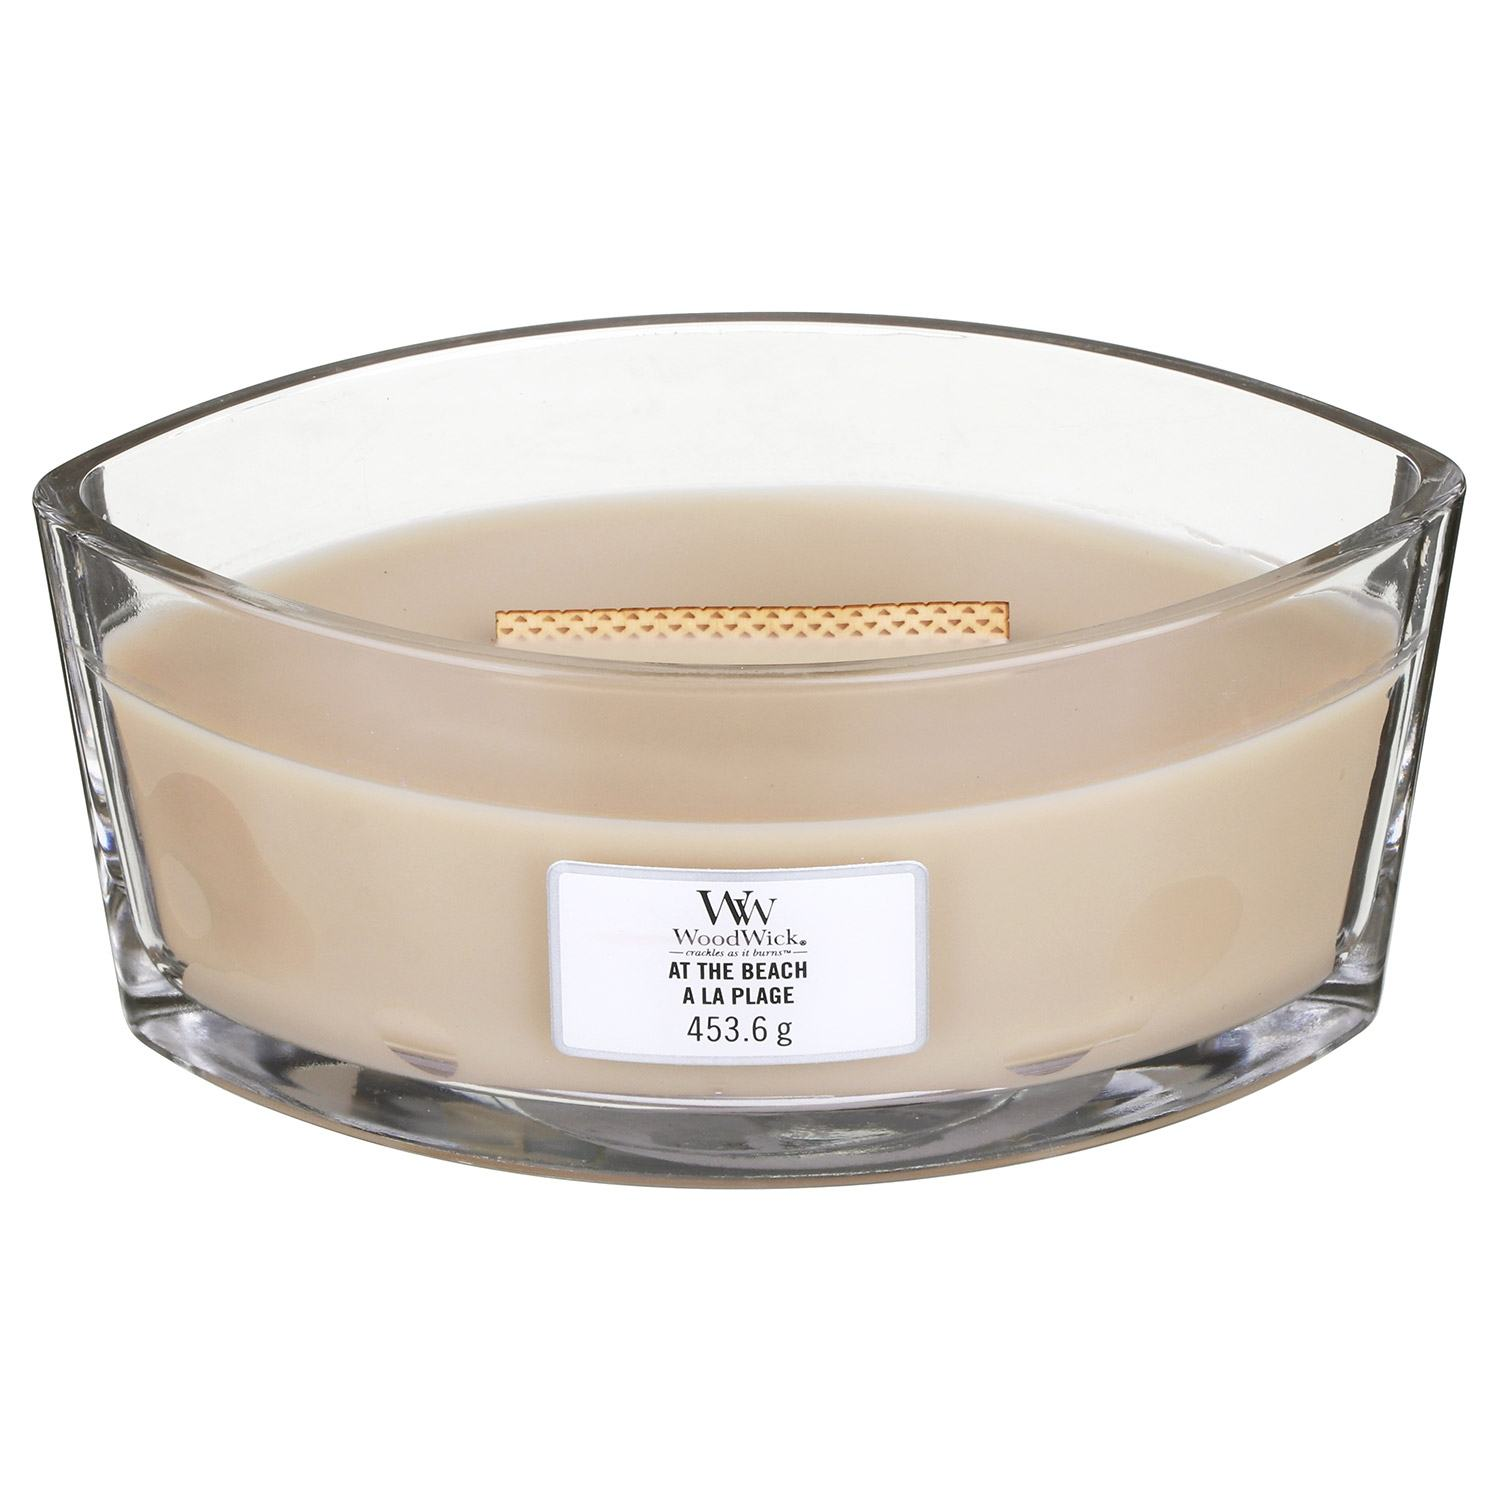 WoodWick At The Beach Hearthwick Ellipse Candle